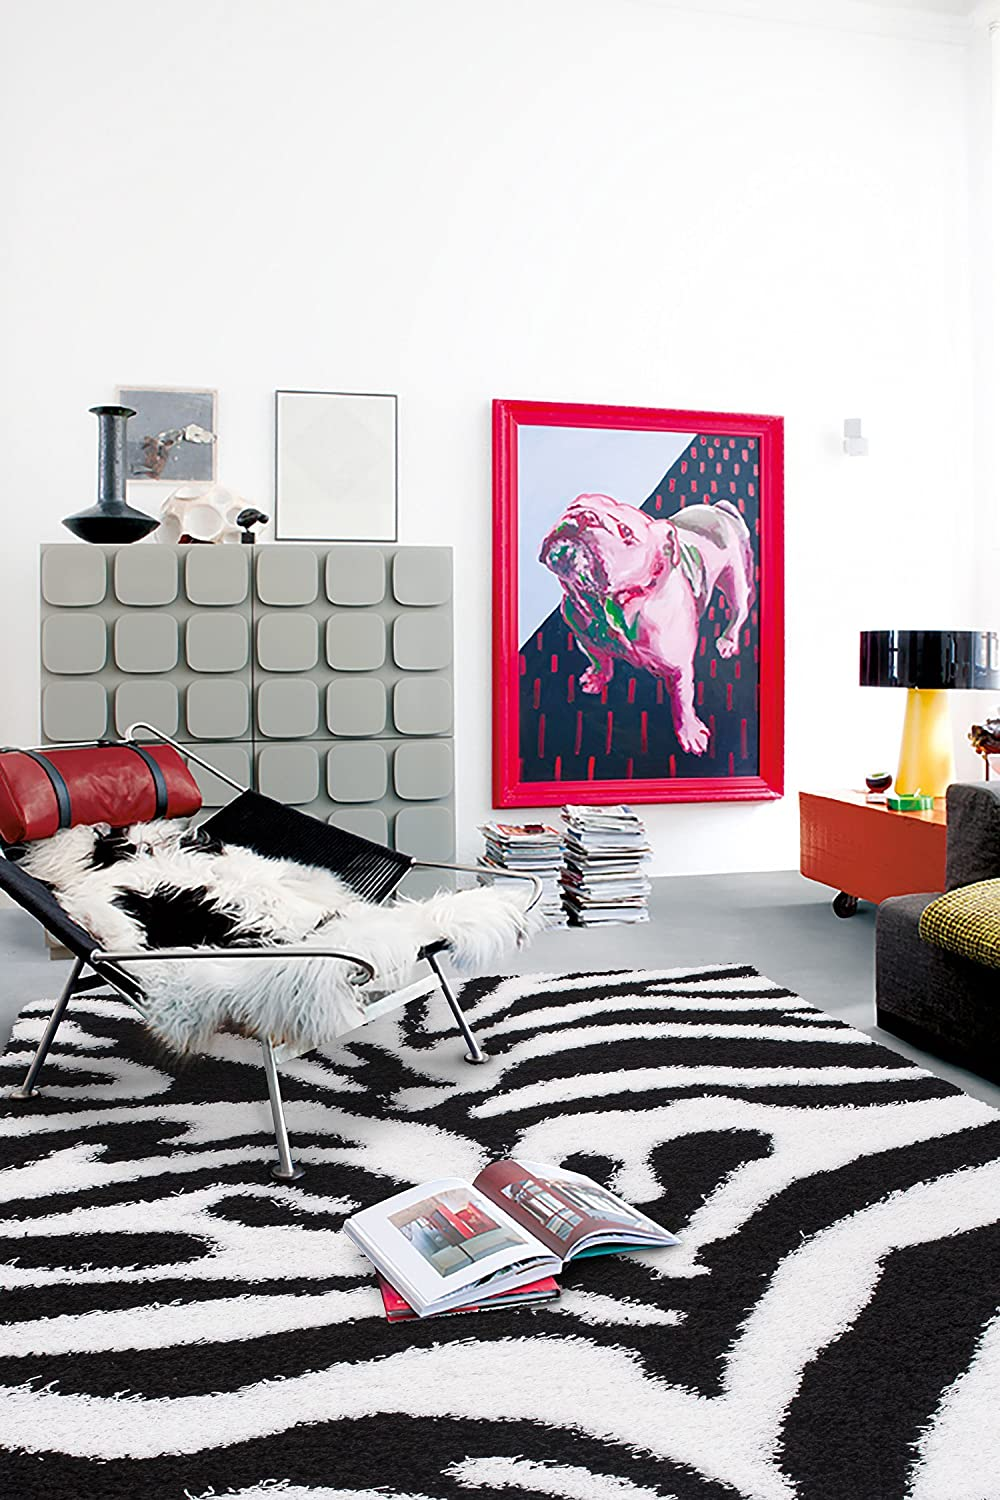 Cozy Shag Collection Black and White Zebra Design Shag Rug (5'0 X 7'0) Contemporary Living and Bedroom Soft Shaggy Area Rug Sweethome Stores COZY2803-5X7